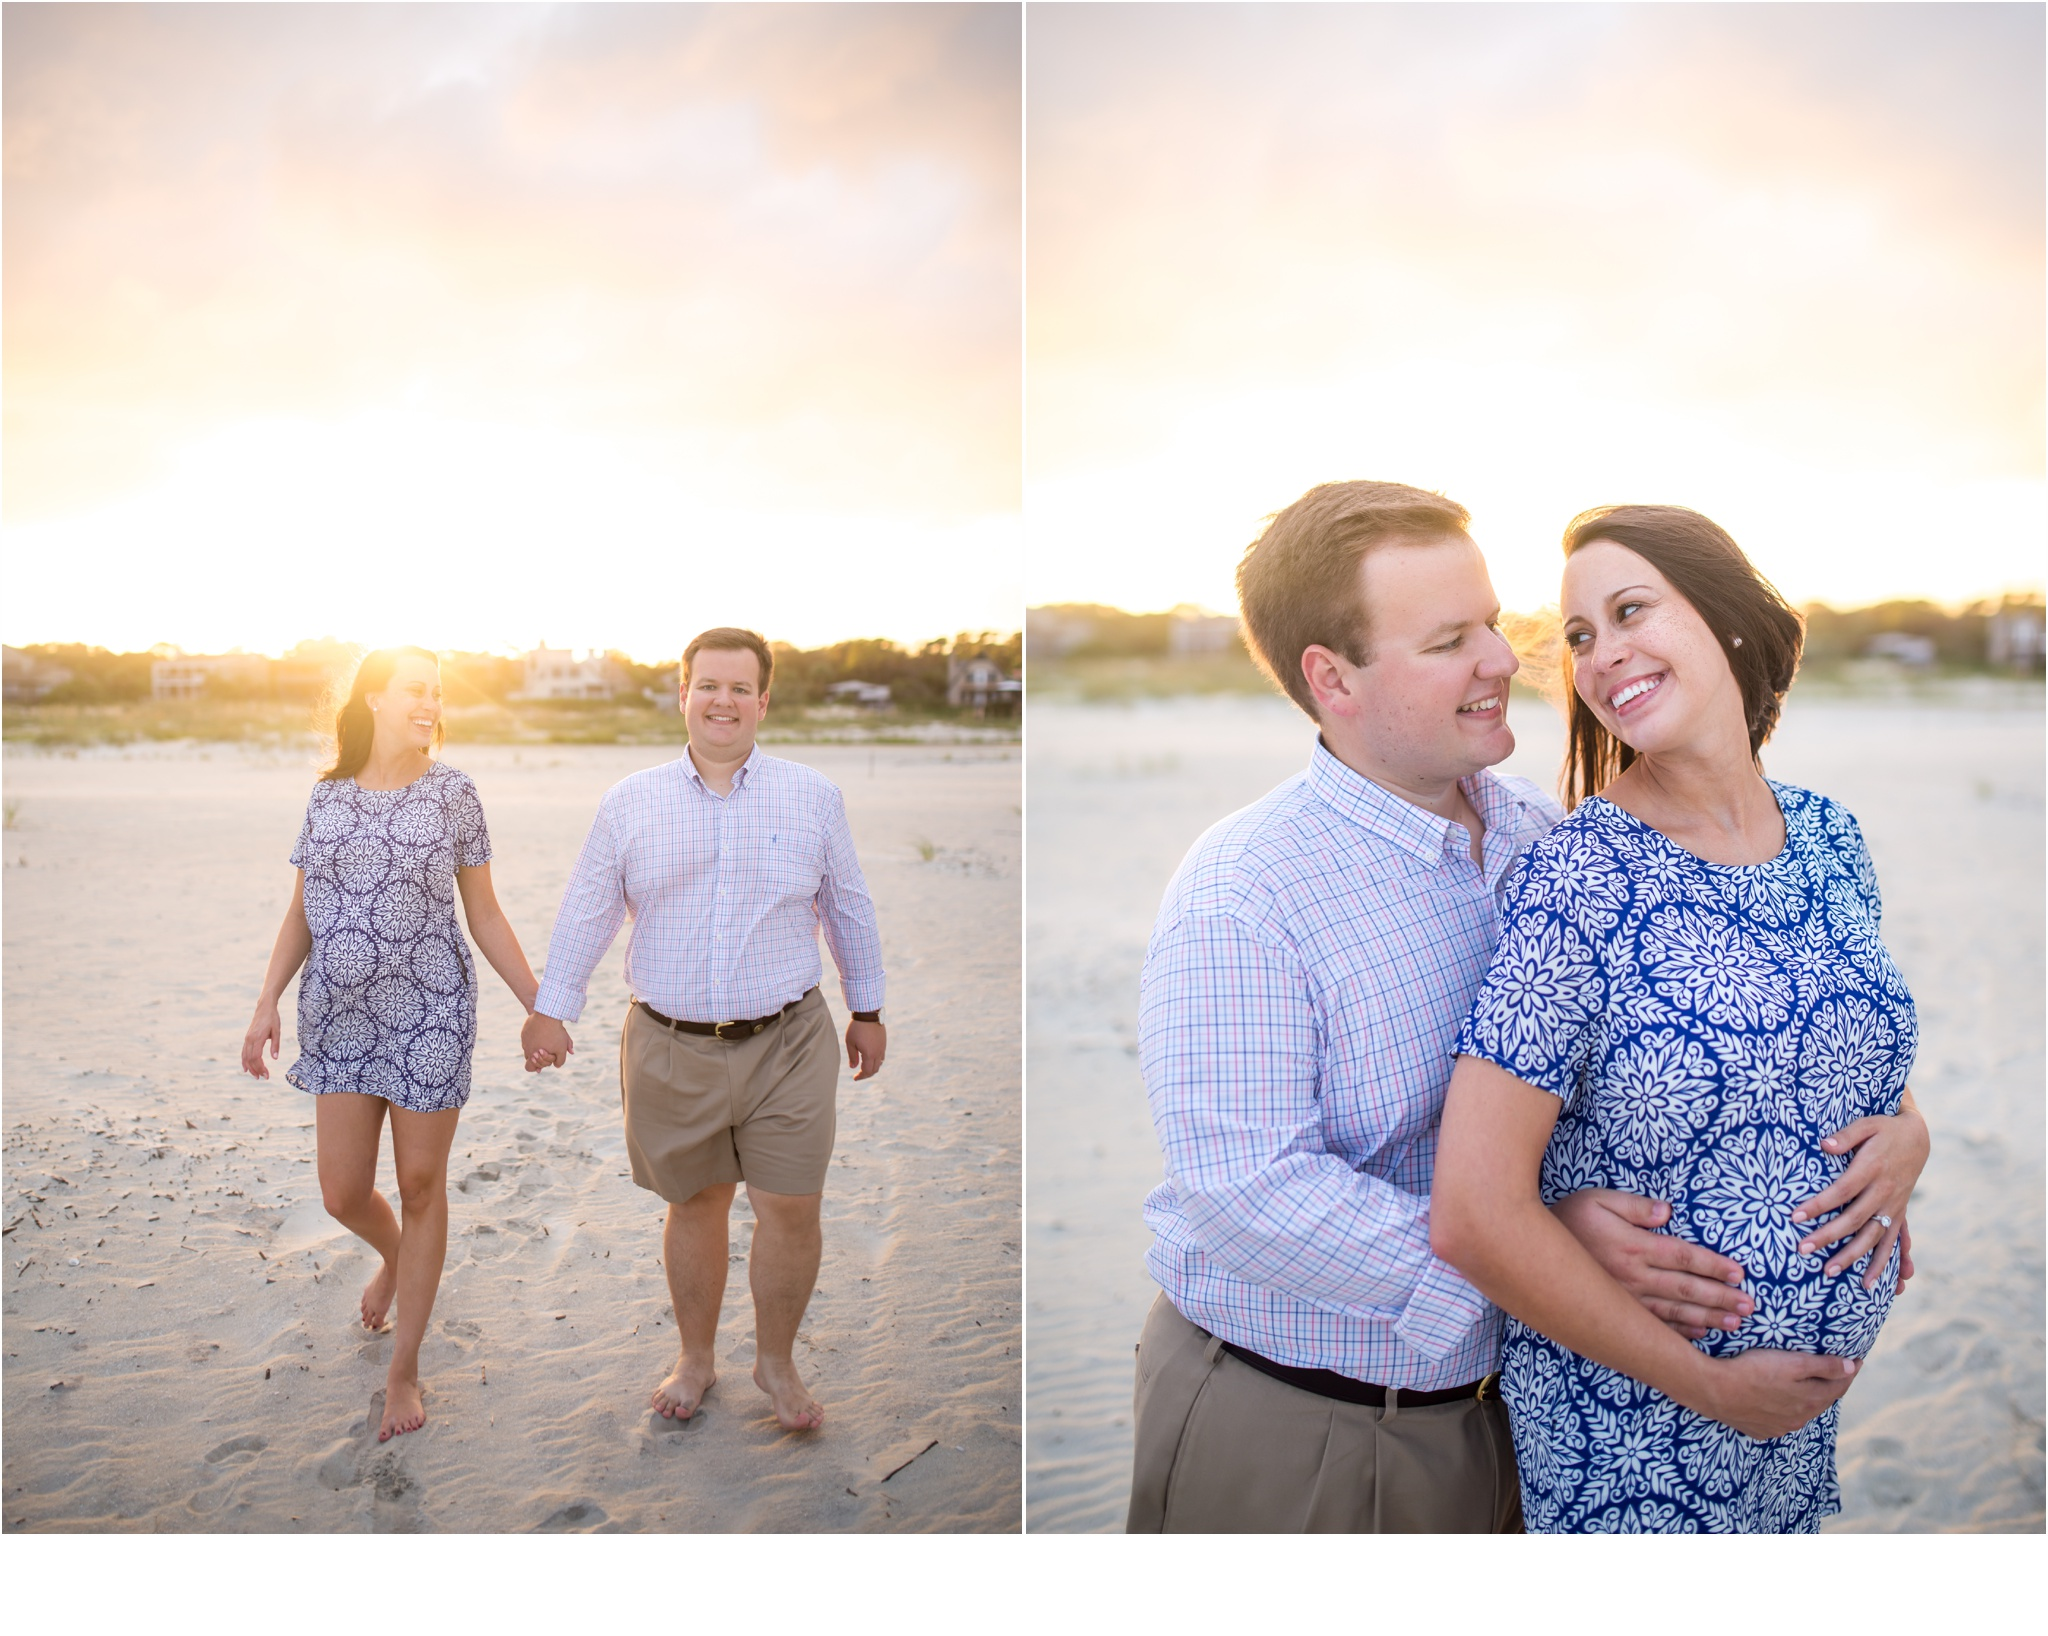 Rainey_Gregg_Photography_St._Simons_Island_Georgia_California_Wedding_Portrait_Photography_1458.jpg